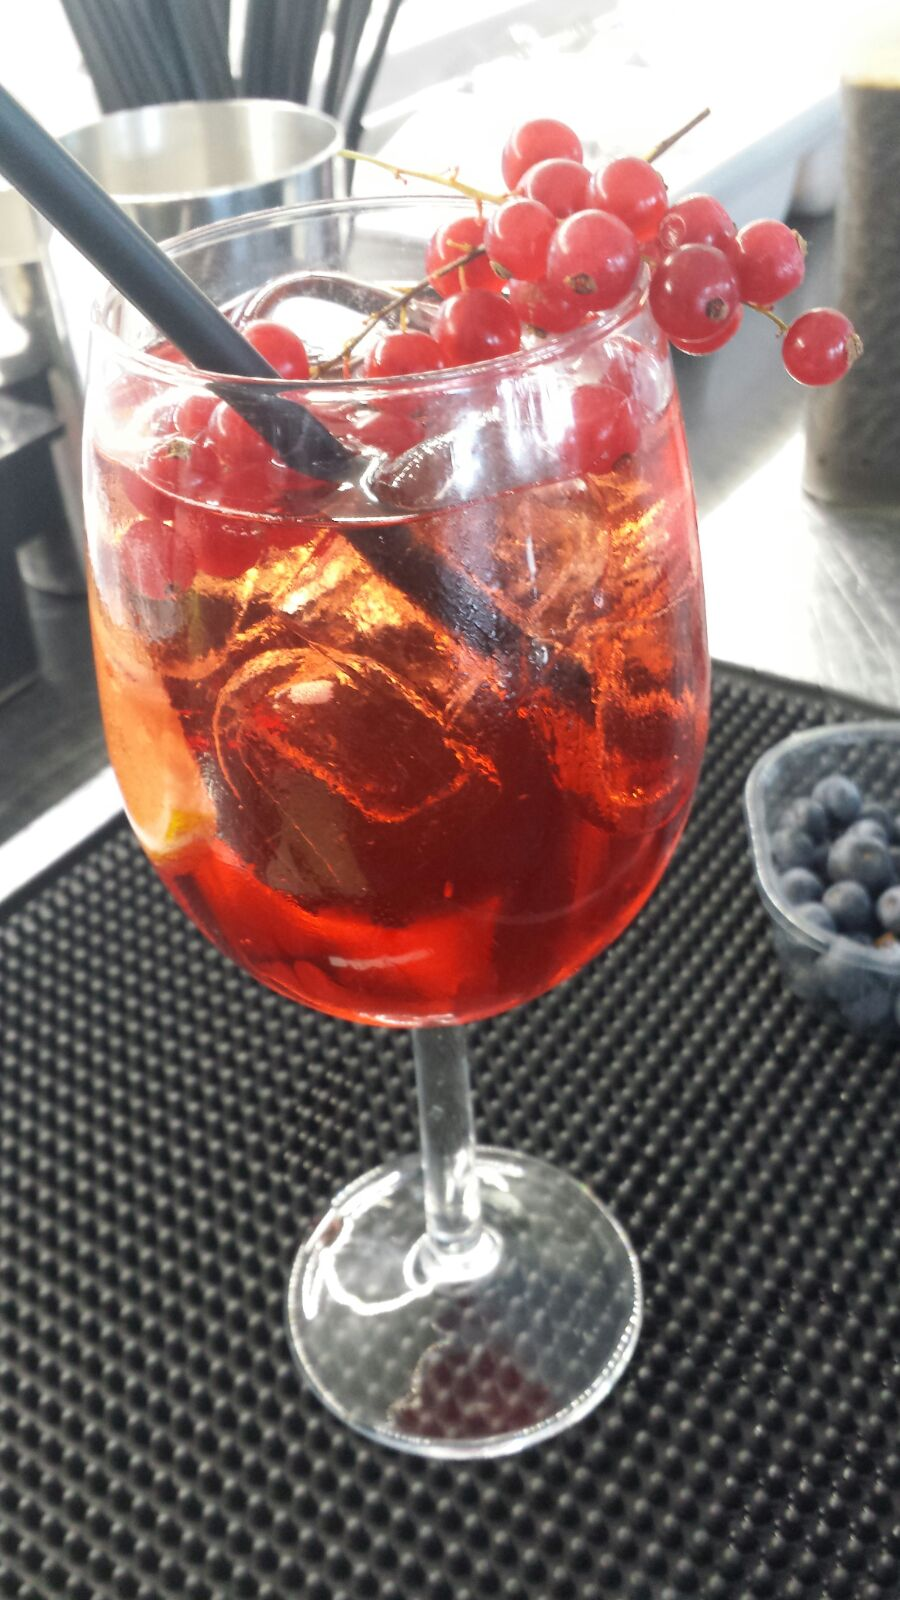 aperitivo a Roma - happy hour al SPATEN LOUNGE RESTAURANT - HAPPY HOUR A  8,50 EURO A ROMA